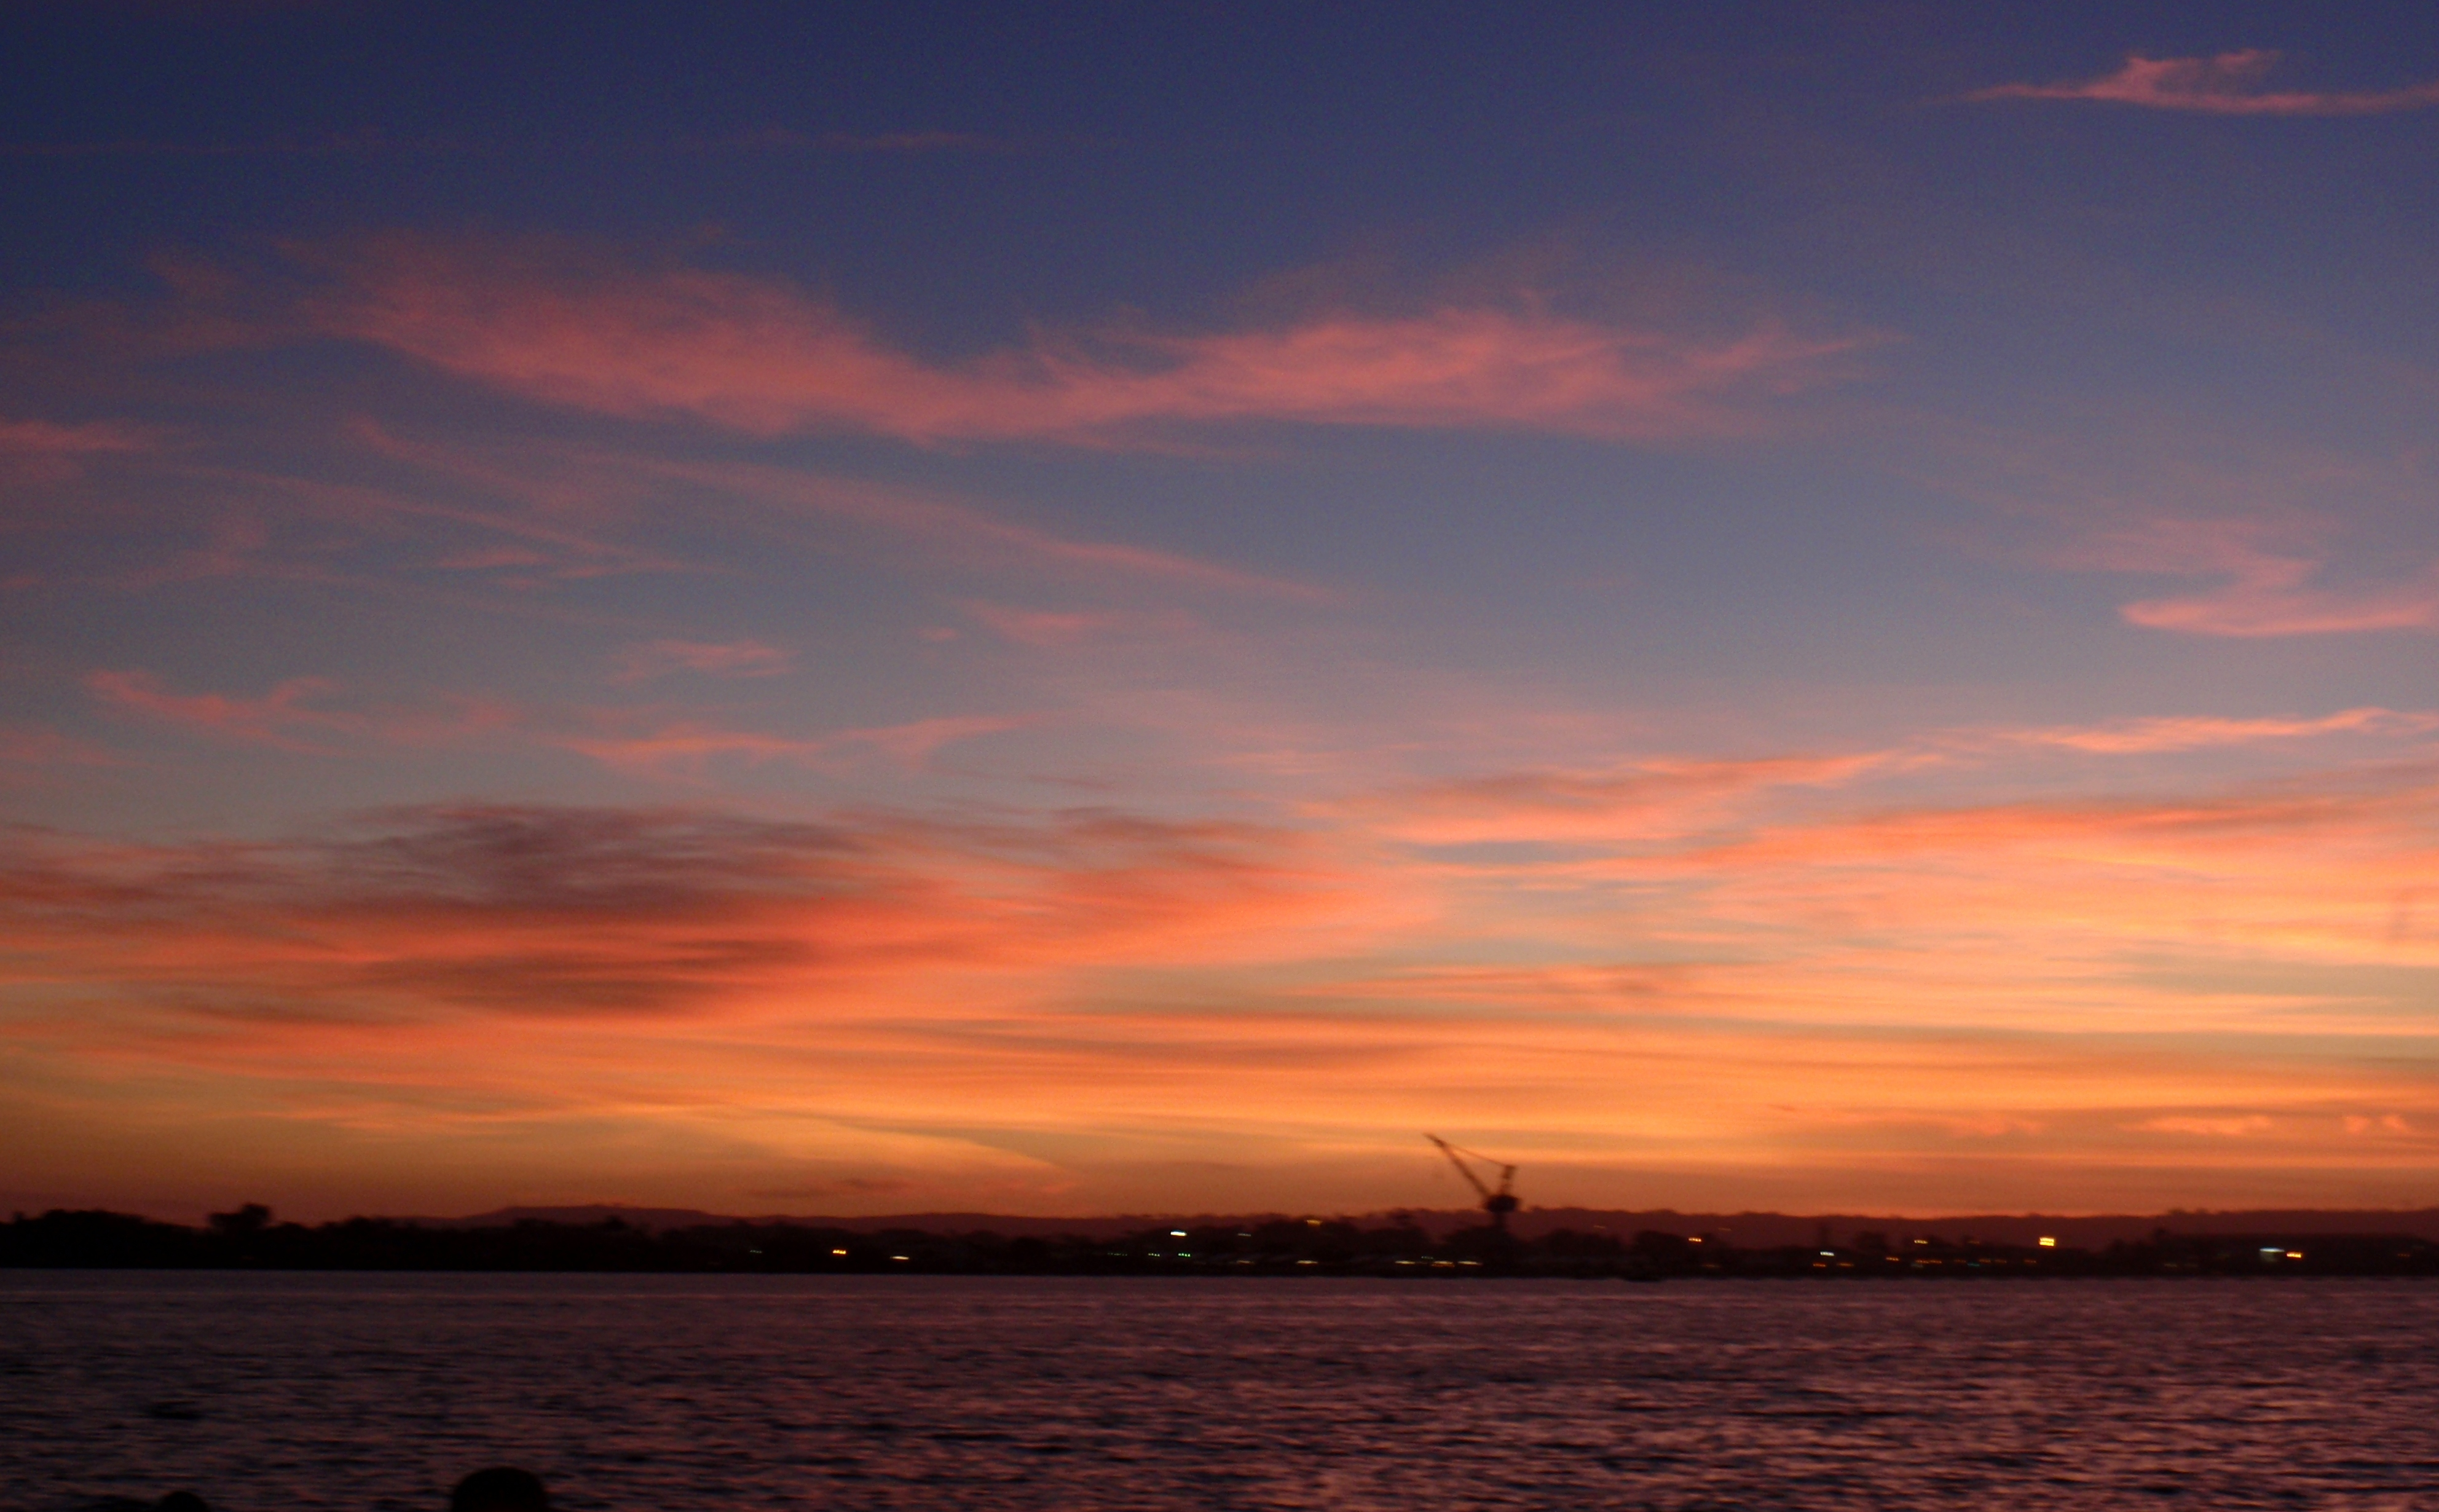 Sunset over San Diego, 10/9/15, photo by James Ulvog.